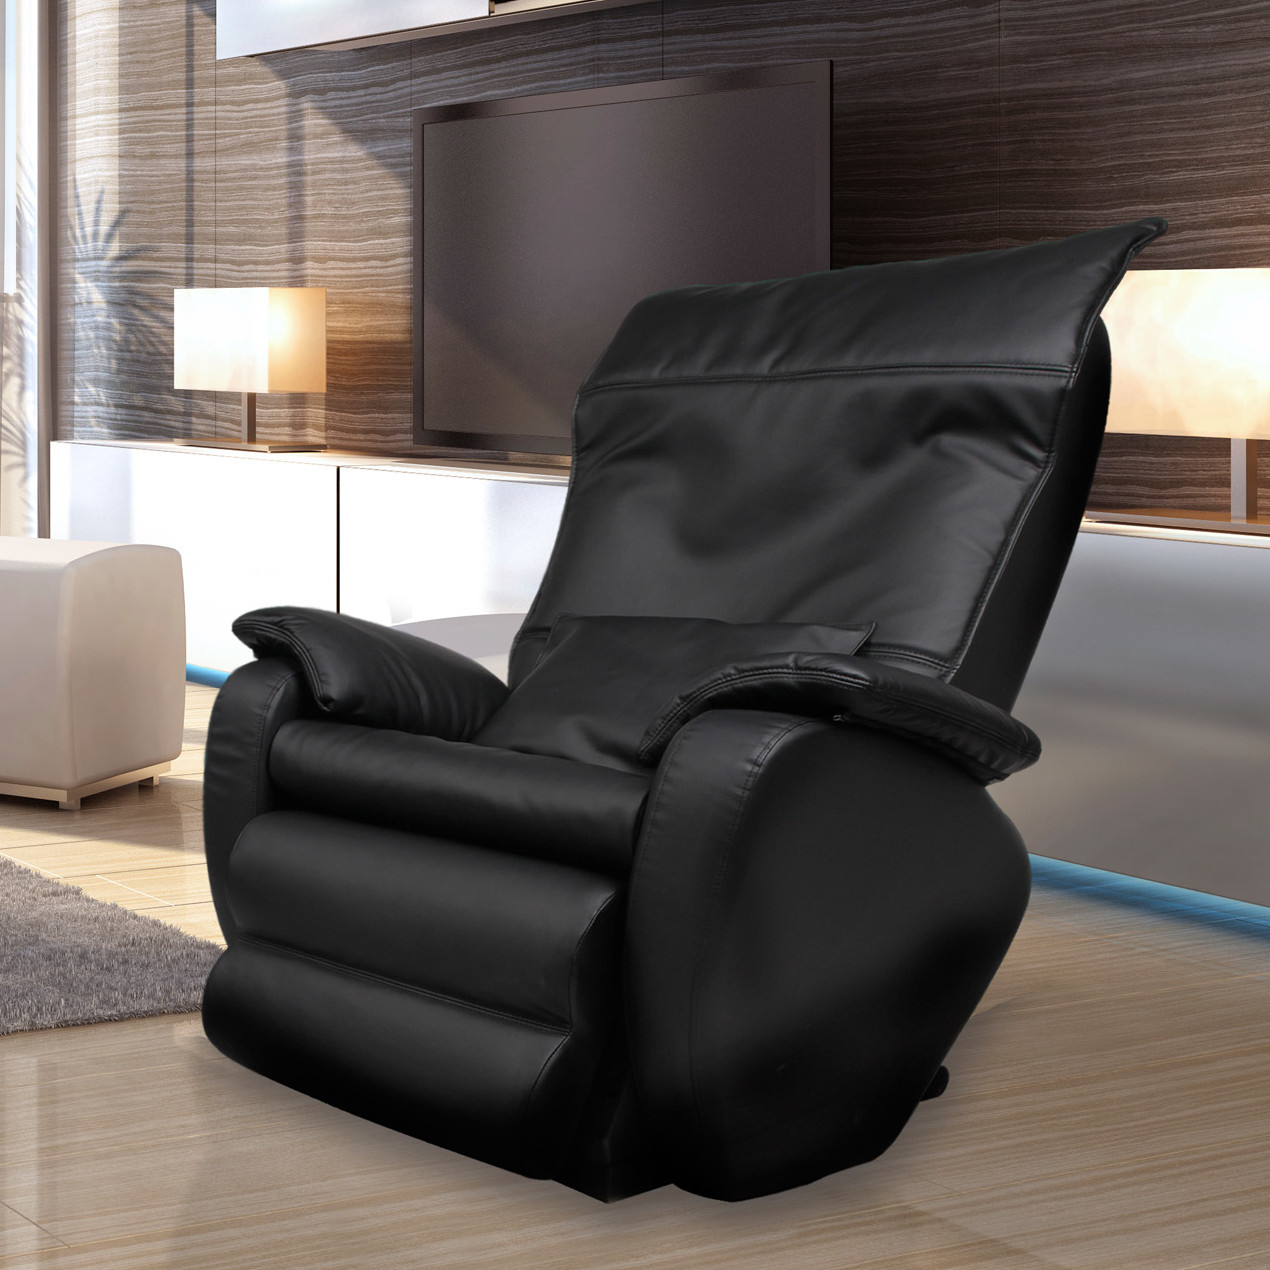 Image of: simple zero gravity massage chair